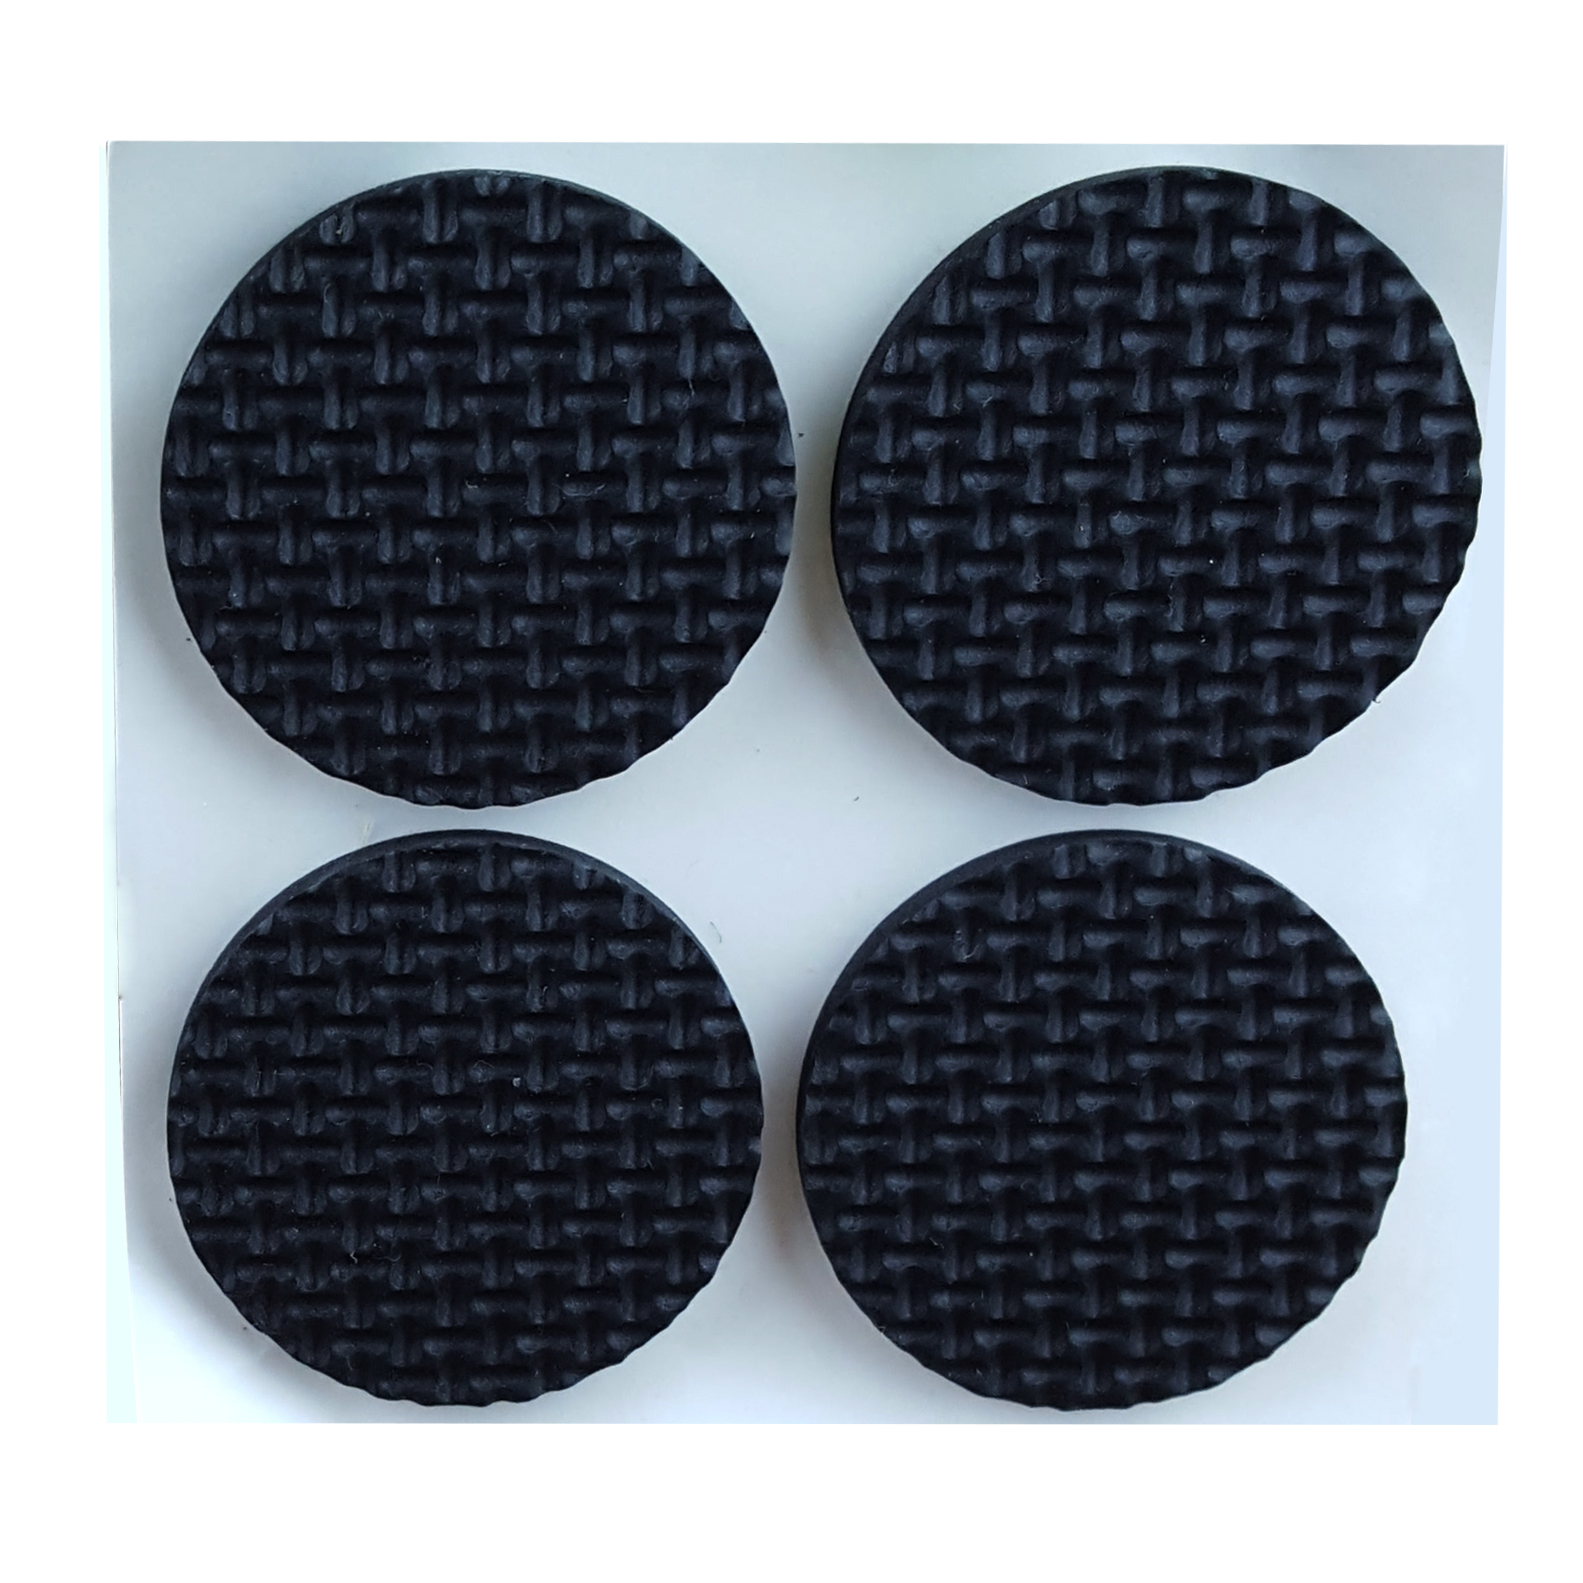 HOT SALE Home Round Shaped Furniture Feet Protection Pad Cushion Mat 8pcs Black hot sale c shaped waterfall acrylic occasional side table